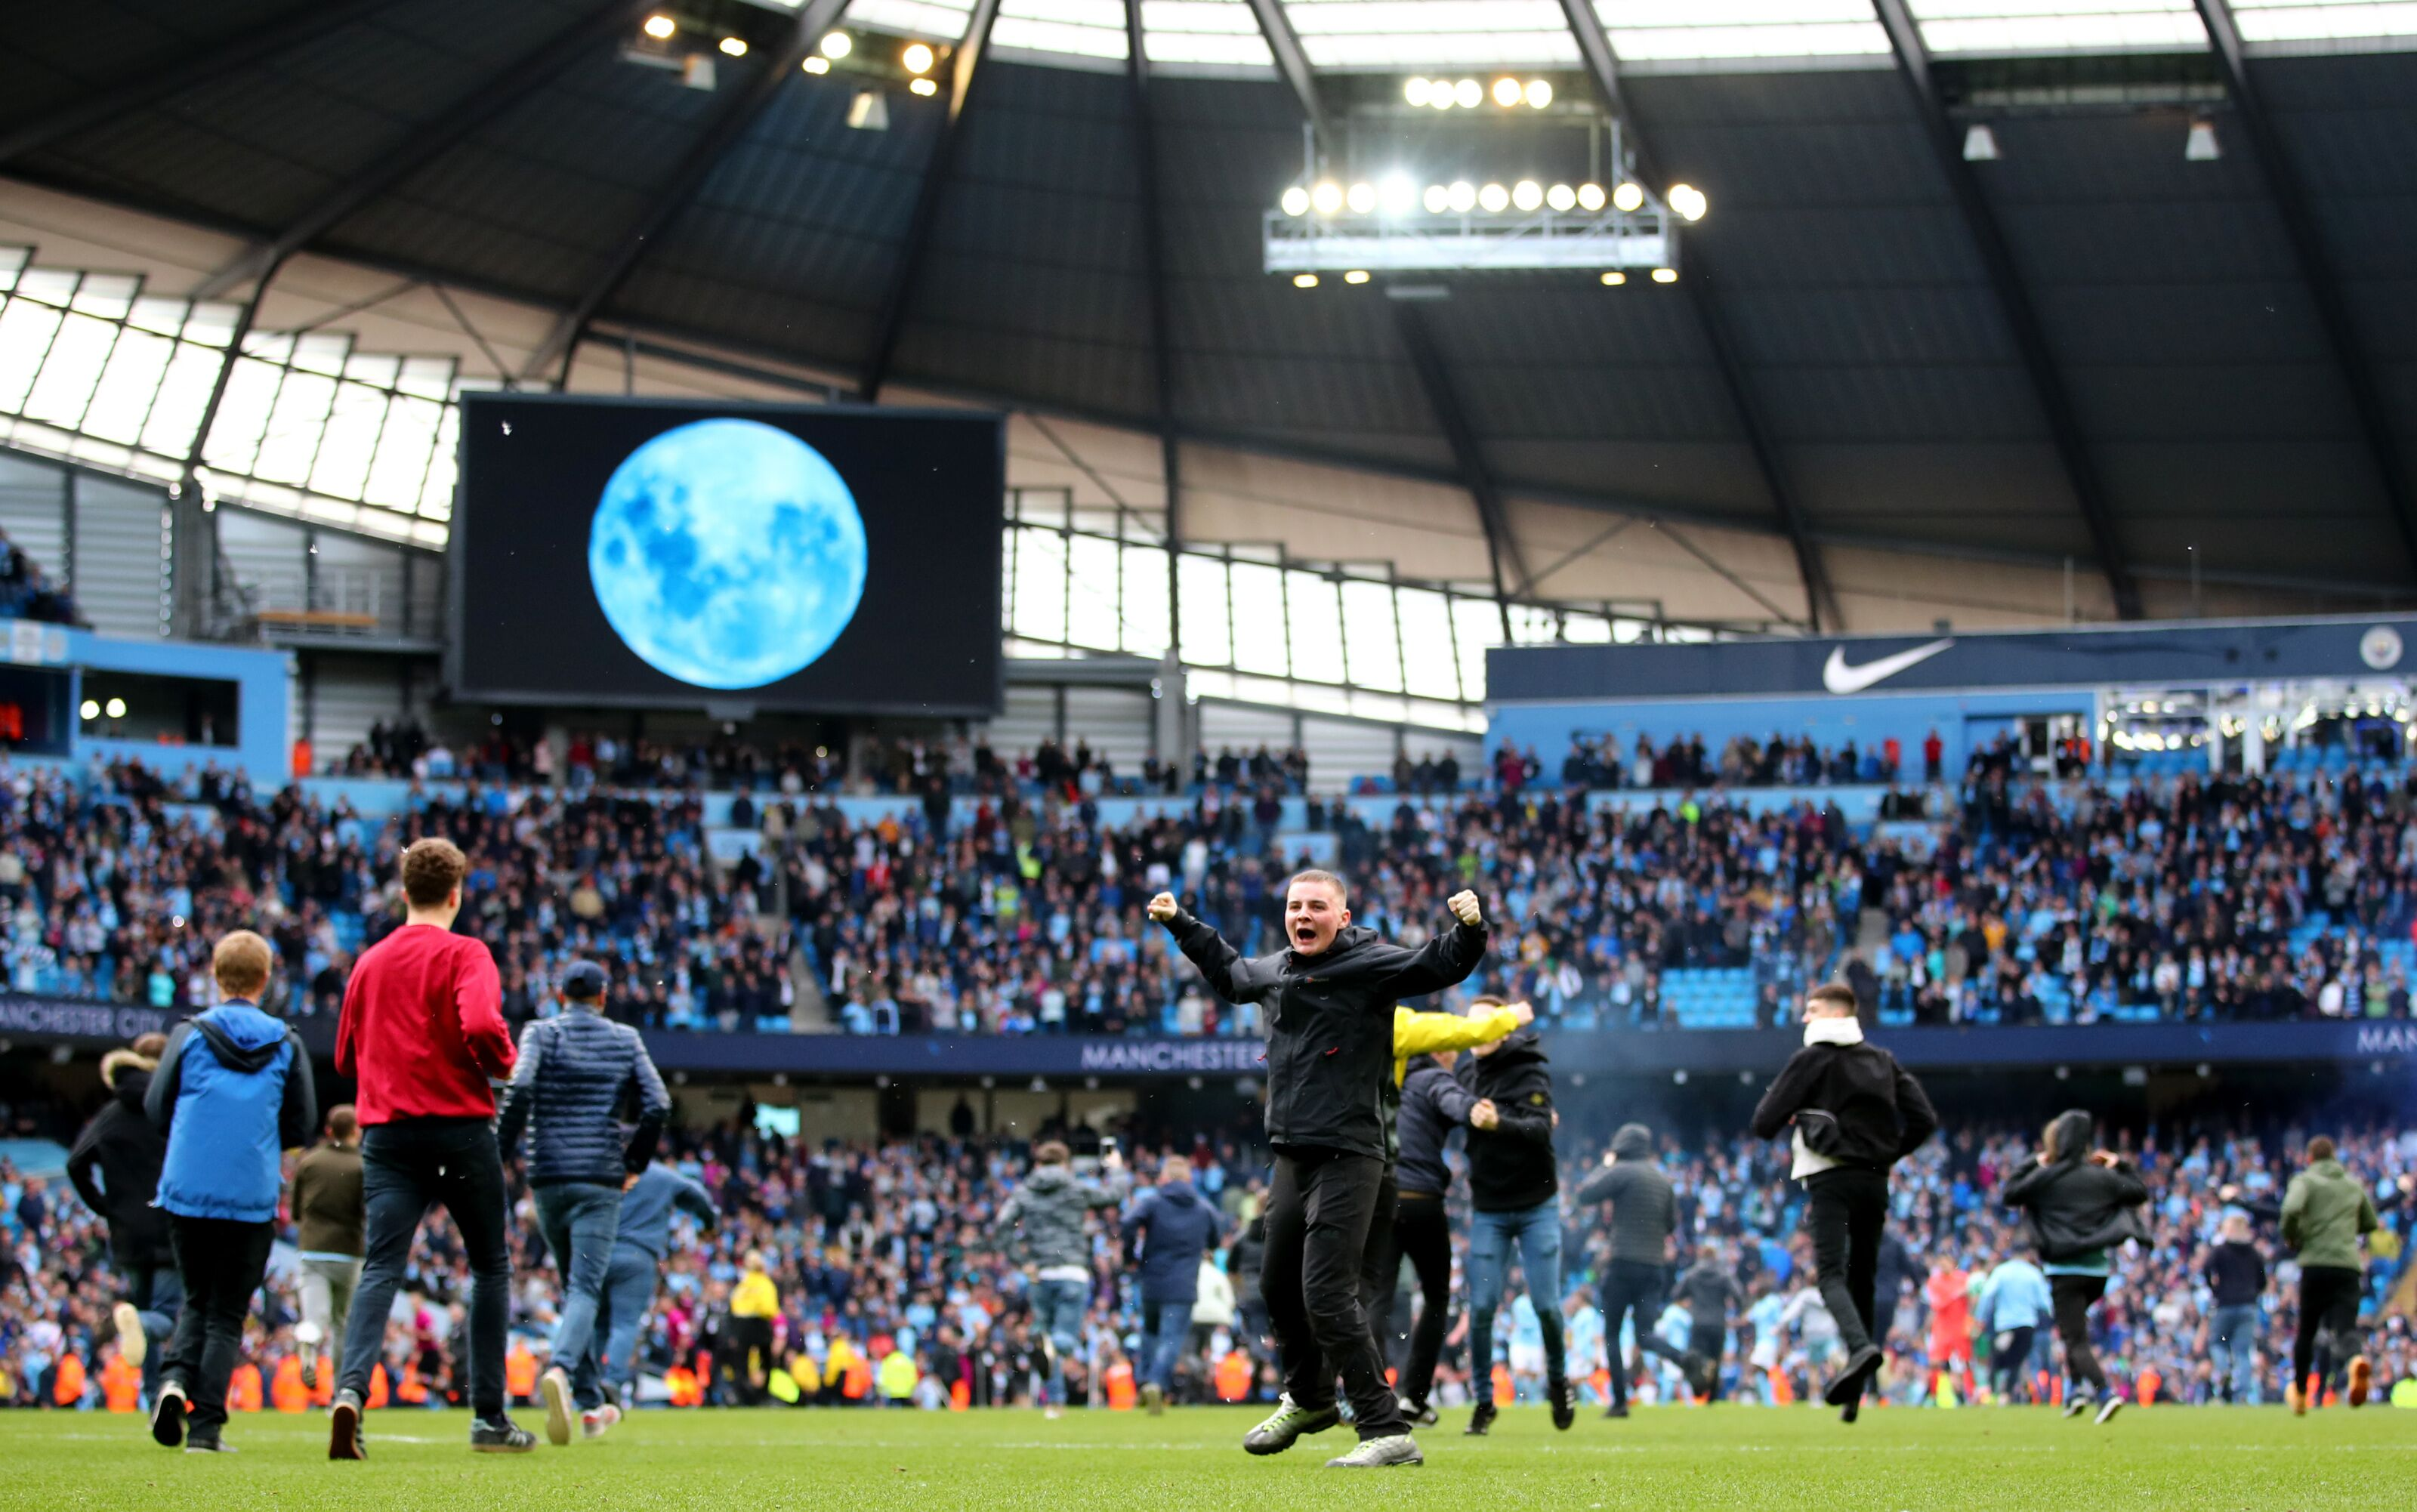 950013852-manchester-city-v-swansea-city-premier-league.jpg